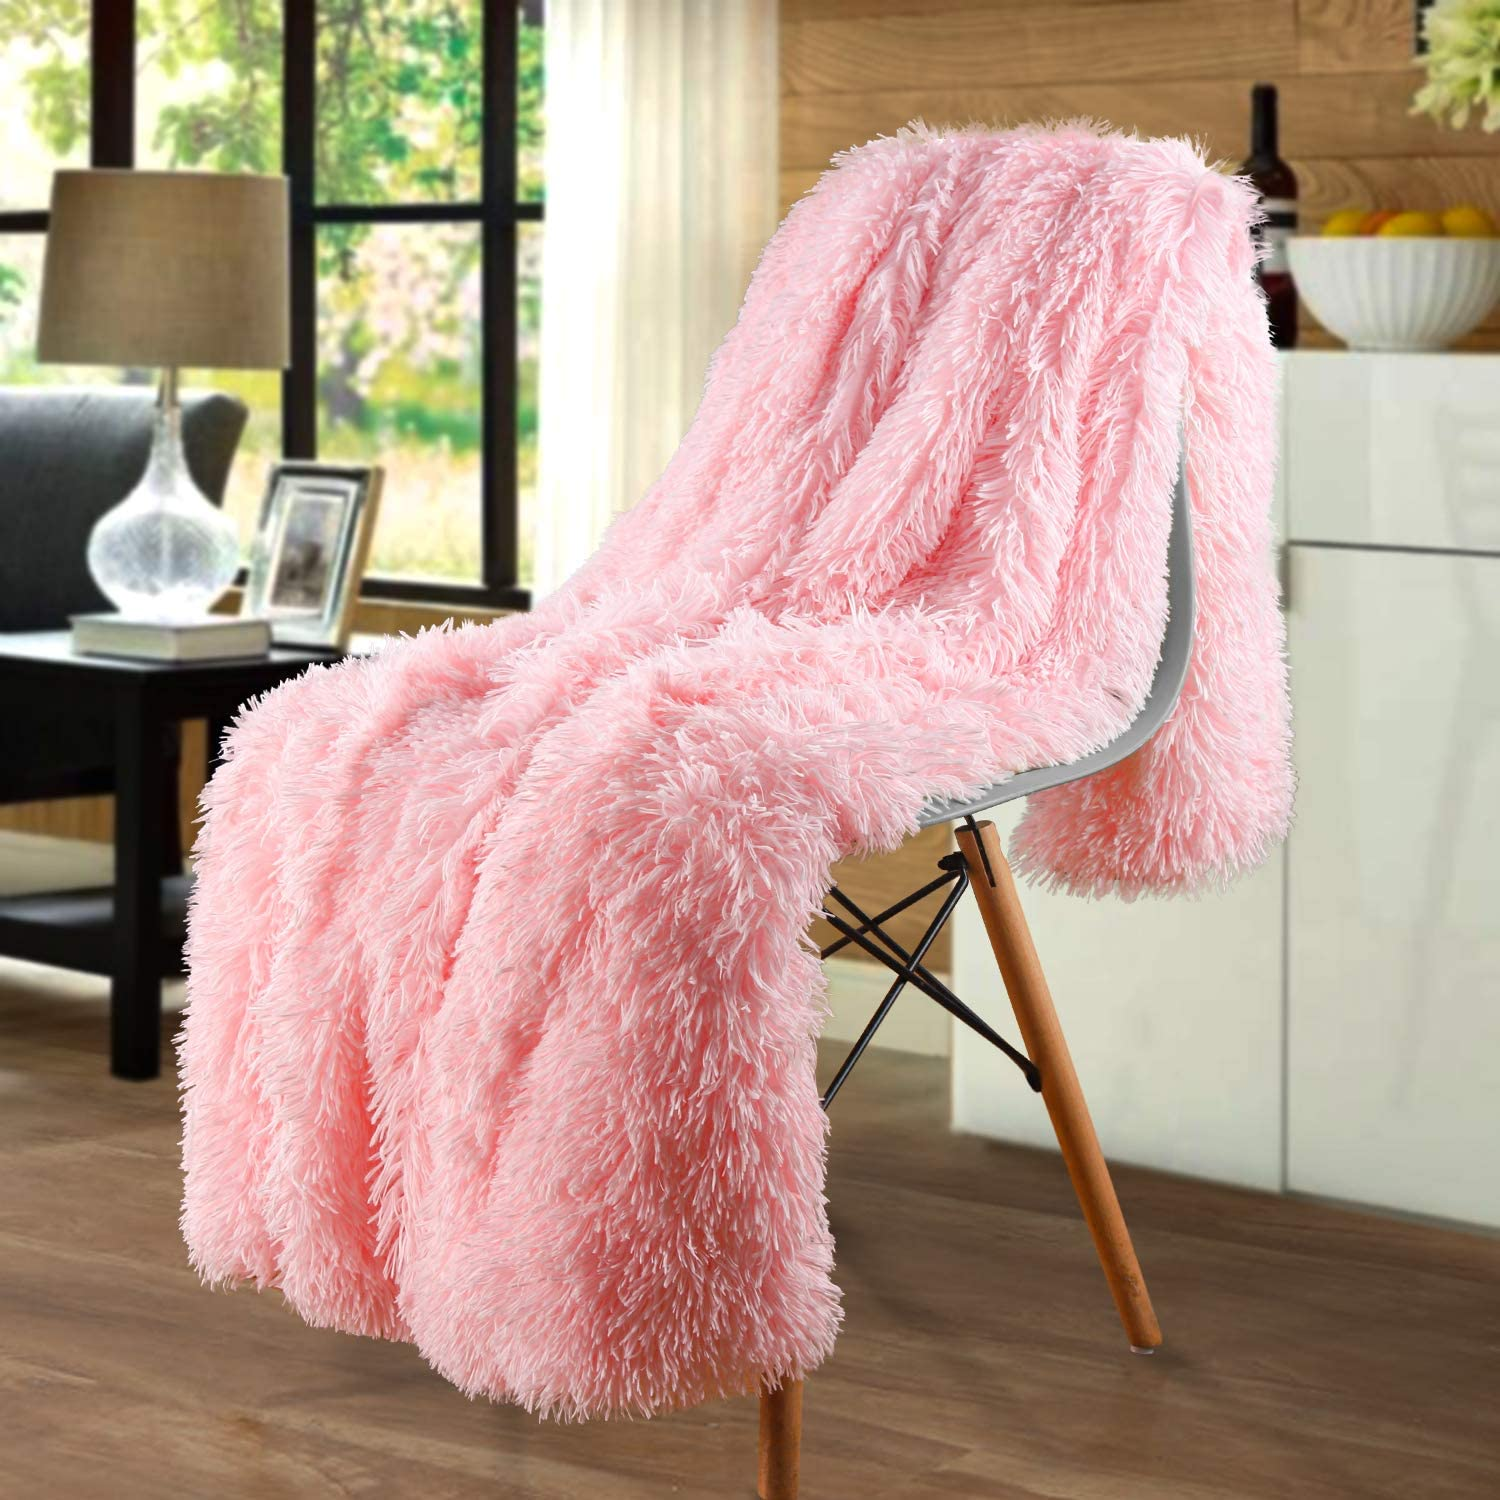 Merit Home Shag with Sherpa Reversible Warm Throw Blanket, Ultra Soft, Cozy Plush Luxury Fuzzy Longfur Blanket, Hypoallergenic and Washable Couch Bed Fluffy Furry Throws Photo Props, 50x60-Light Pink